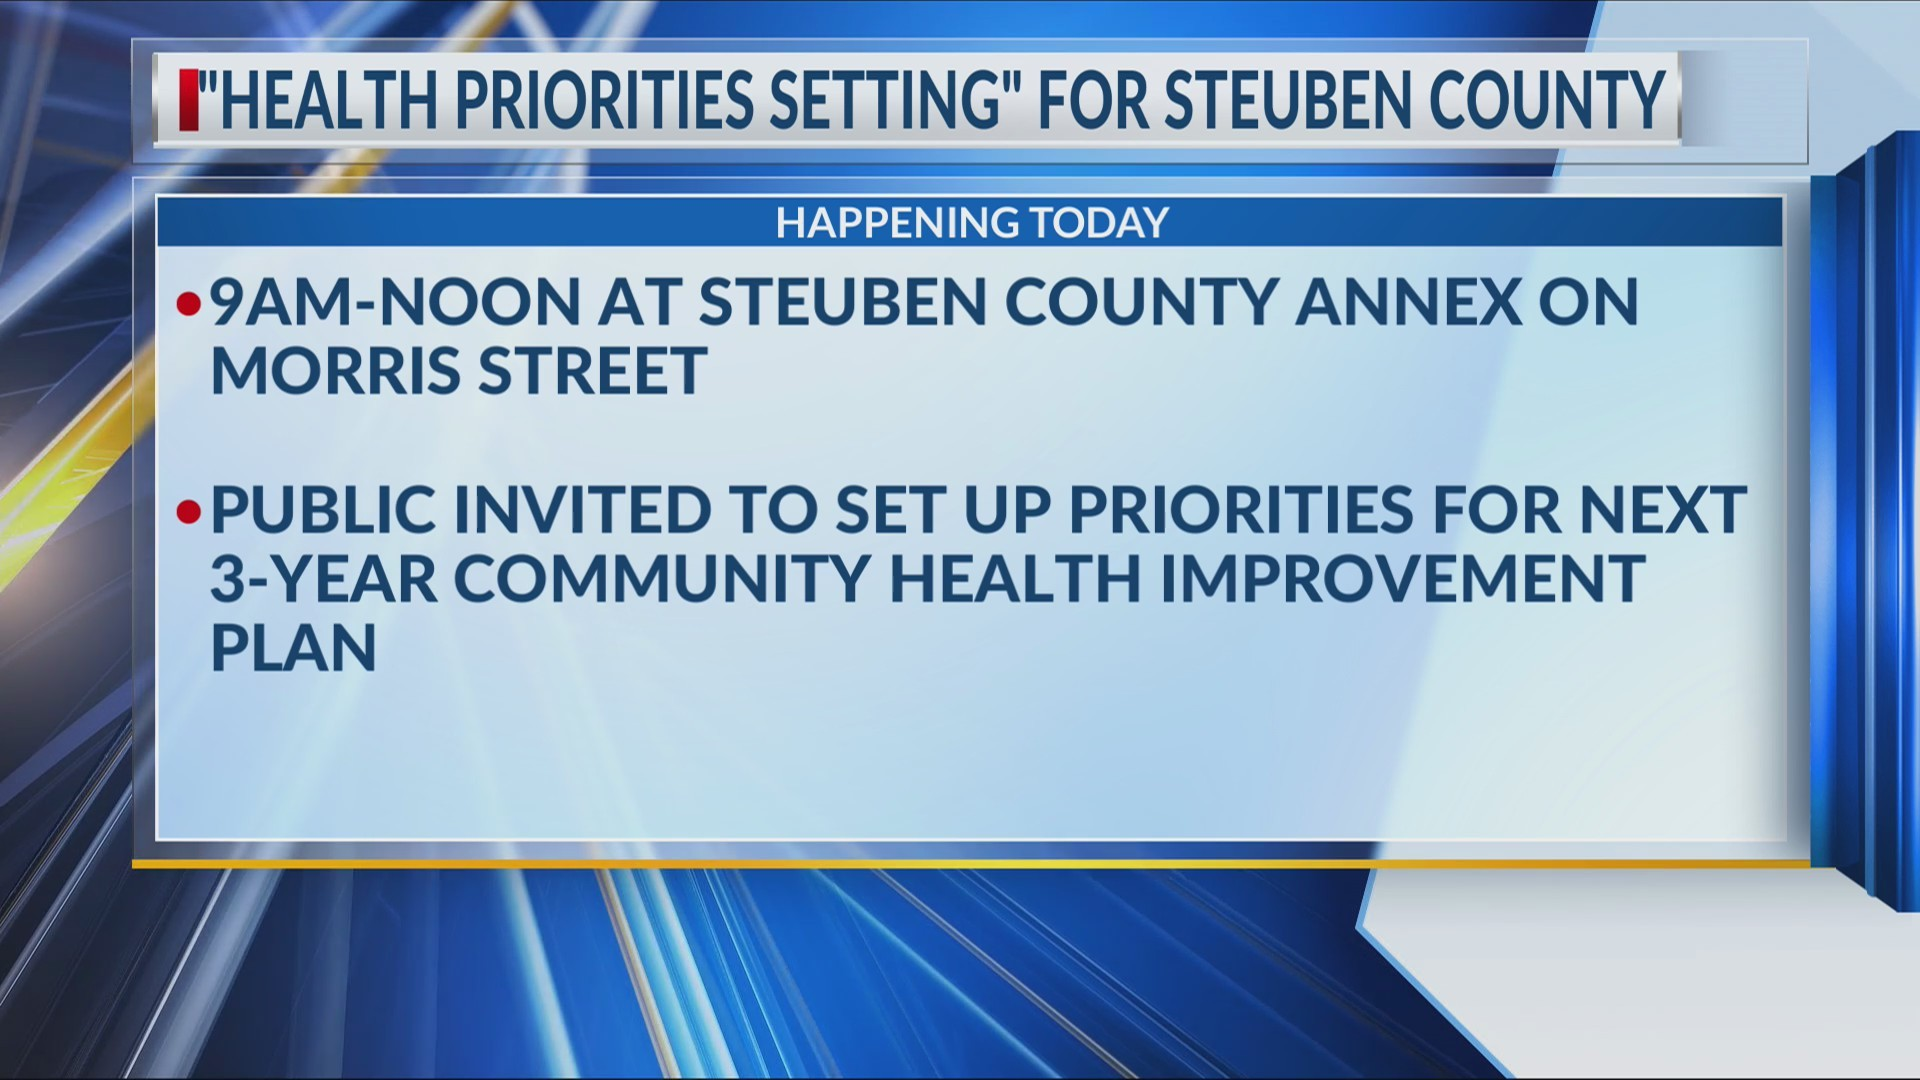 Steuben County residents invited to set health priorities for community